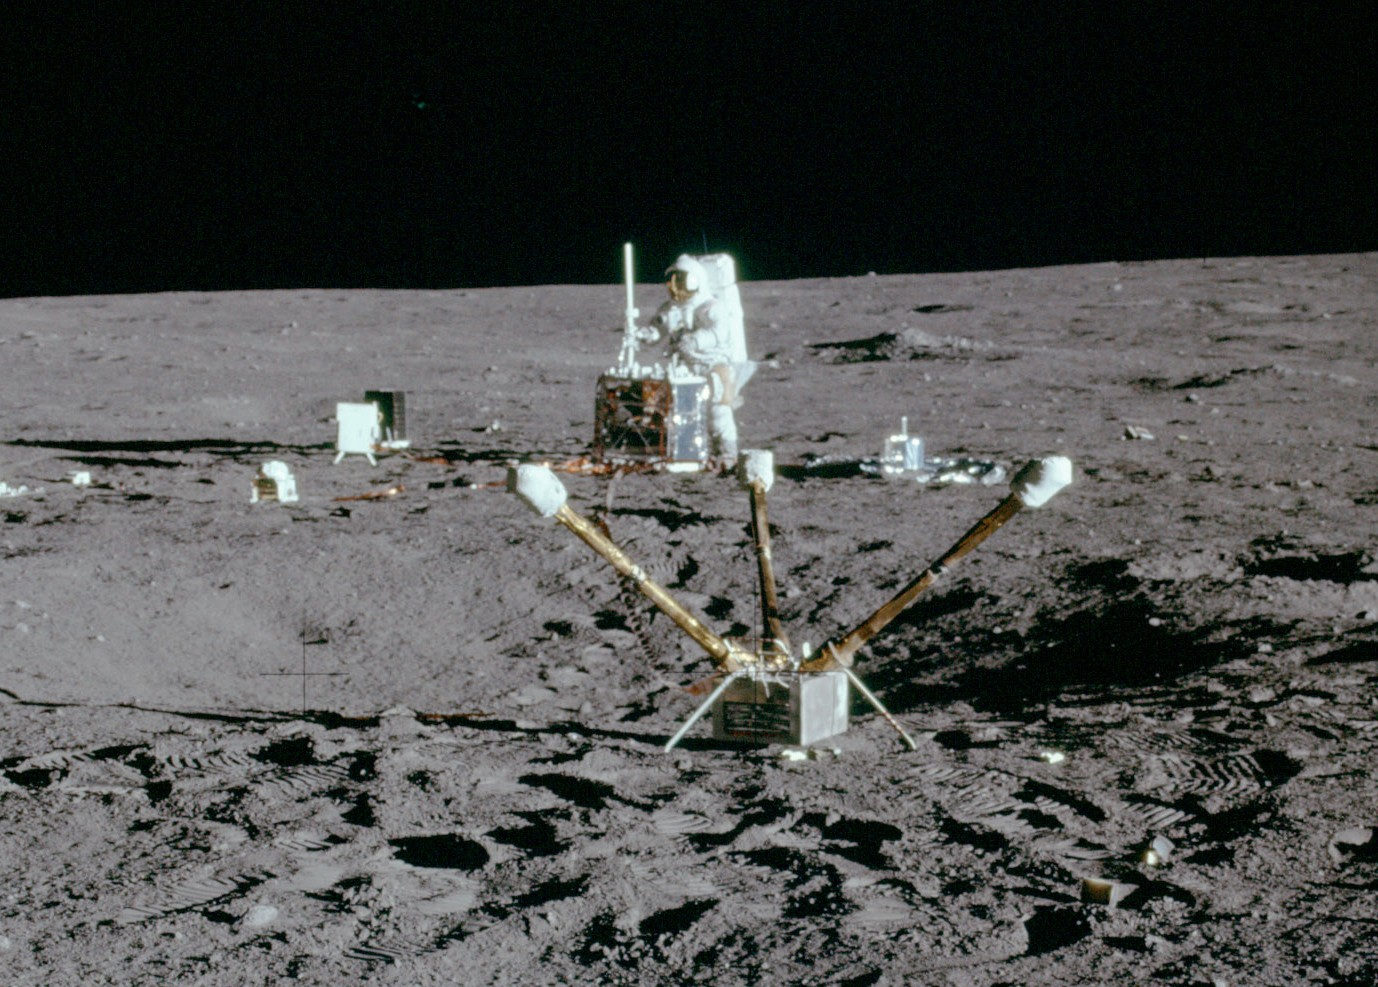 Commander Conrad sets up the Apollo Lunar Surface Experiments Package (ALSEP) during the first EVA. Credit: NASA